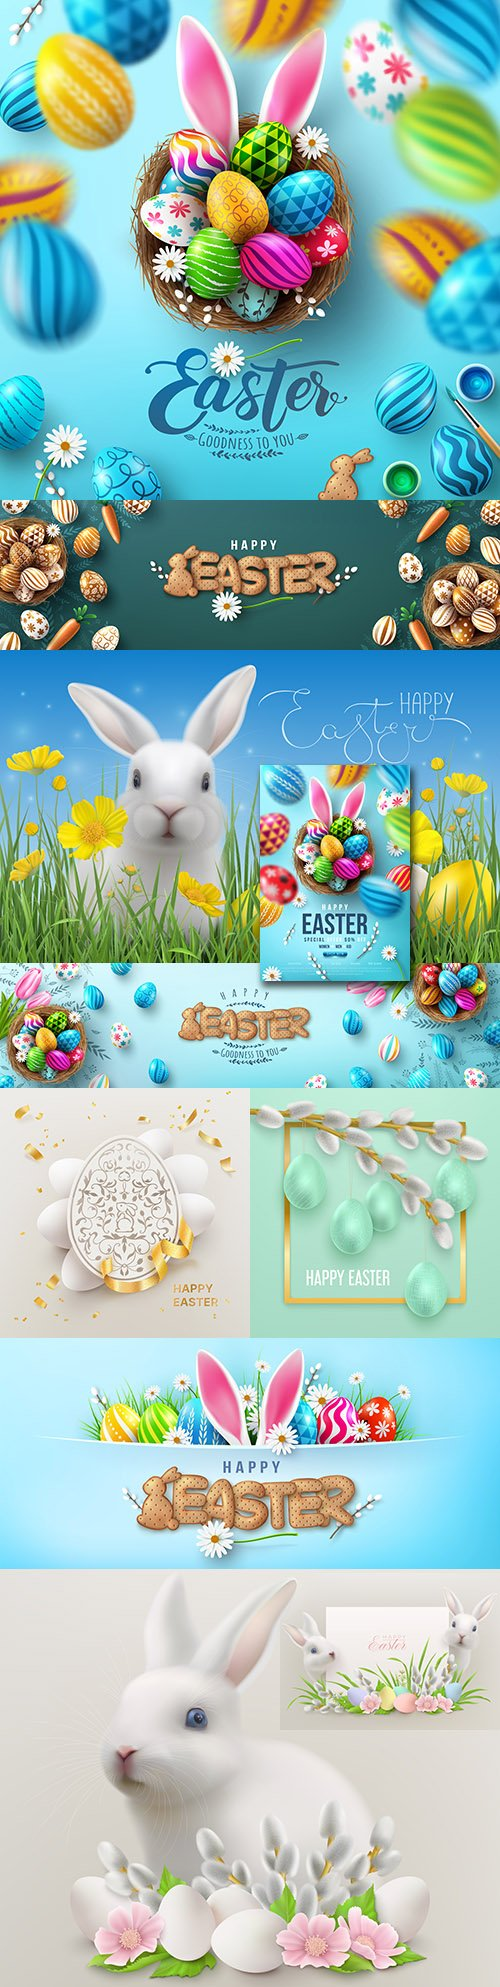 Happy Easter background and design banner with colorful eggs 7